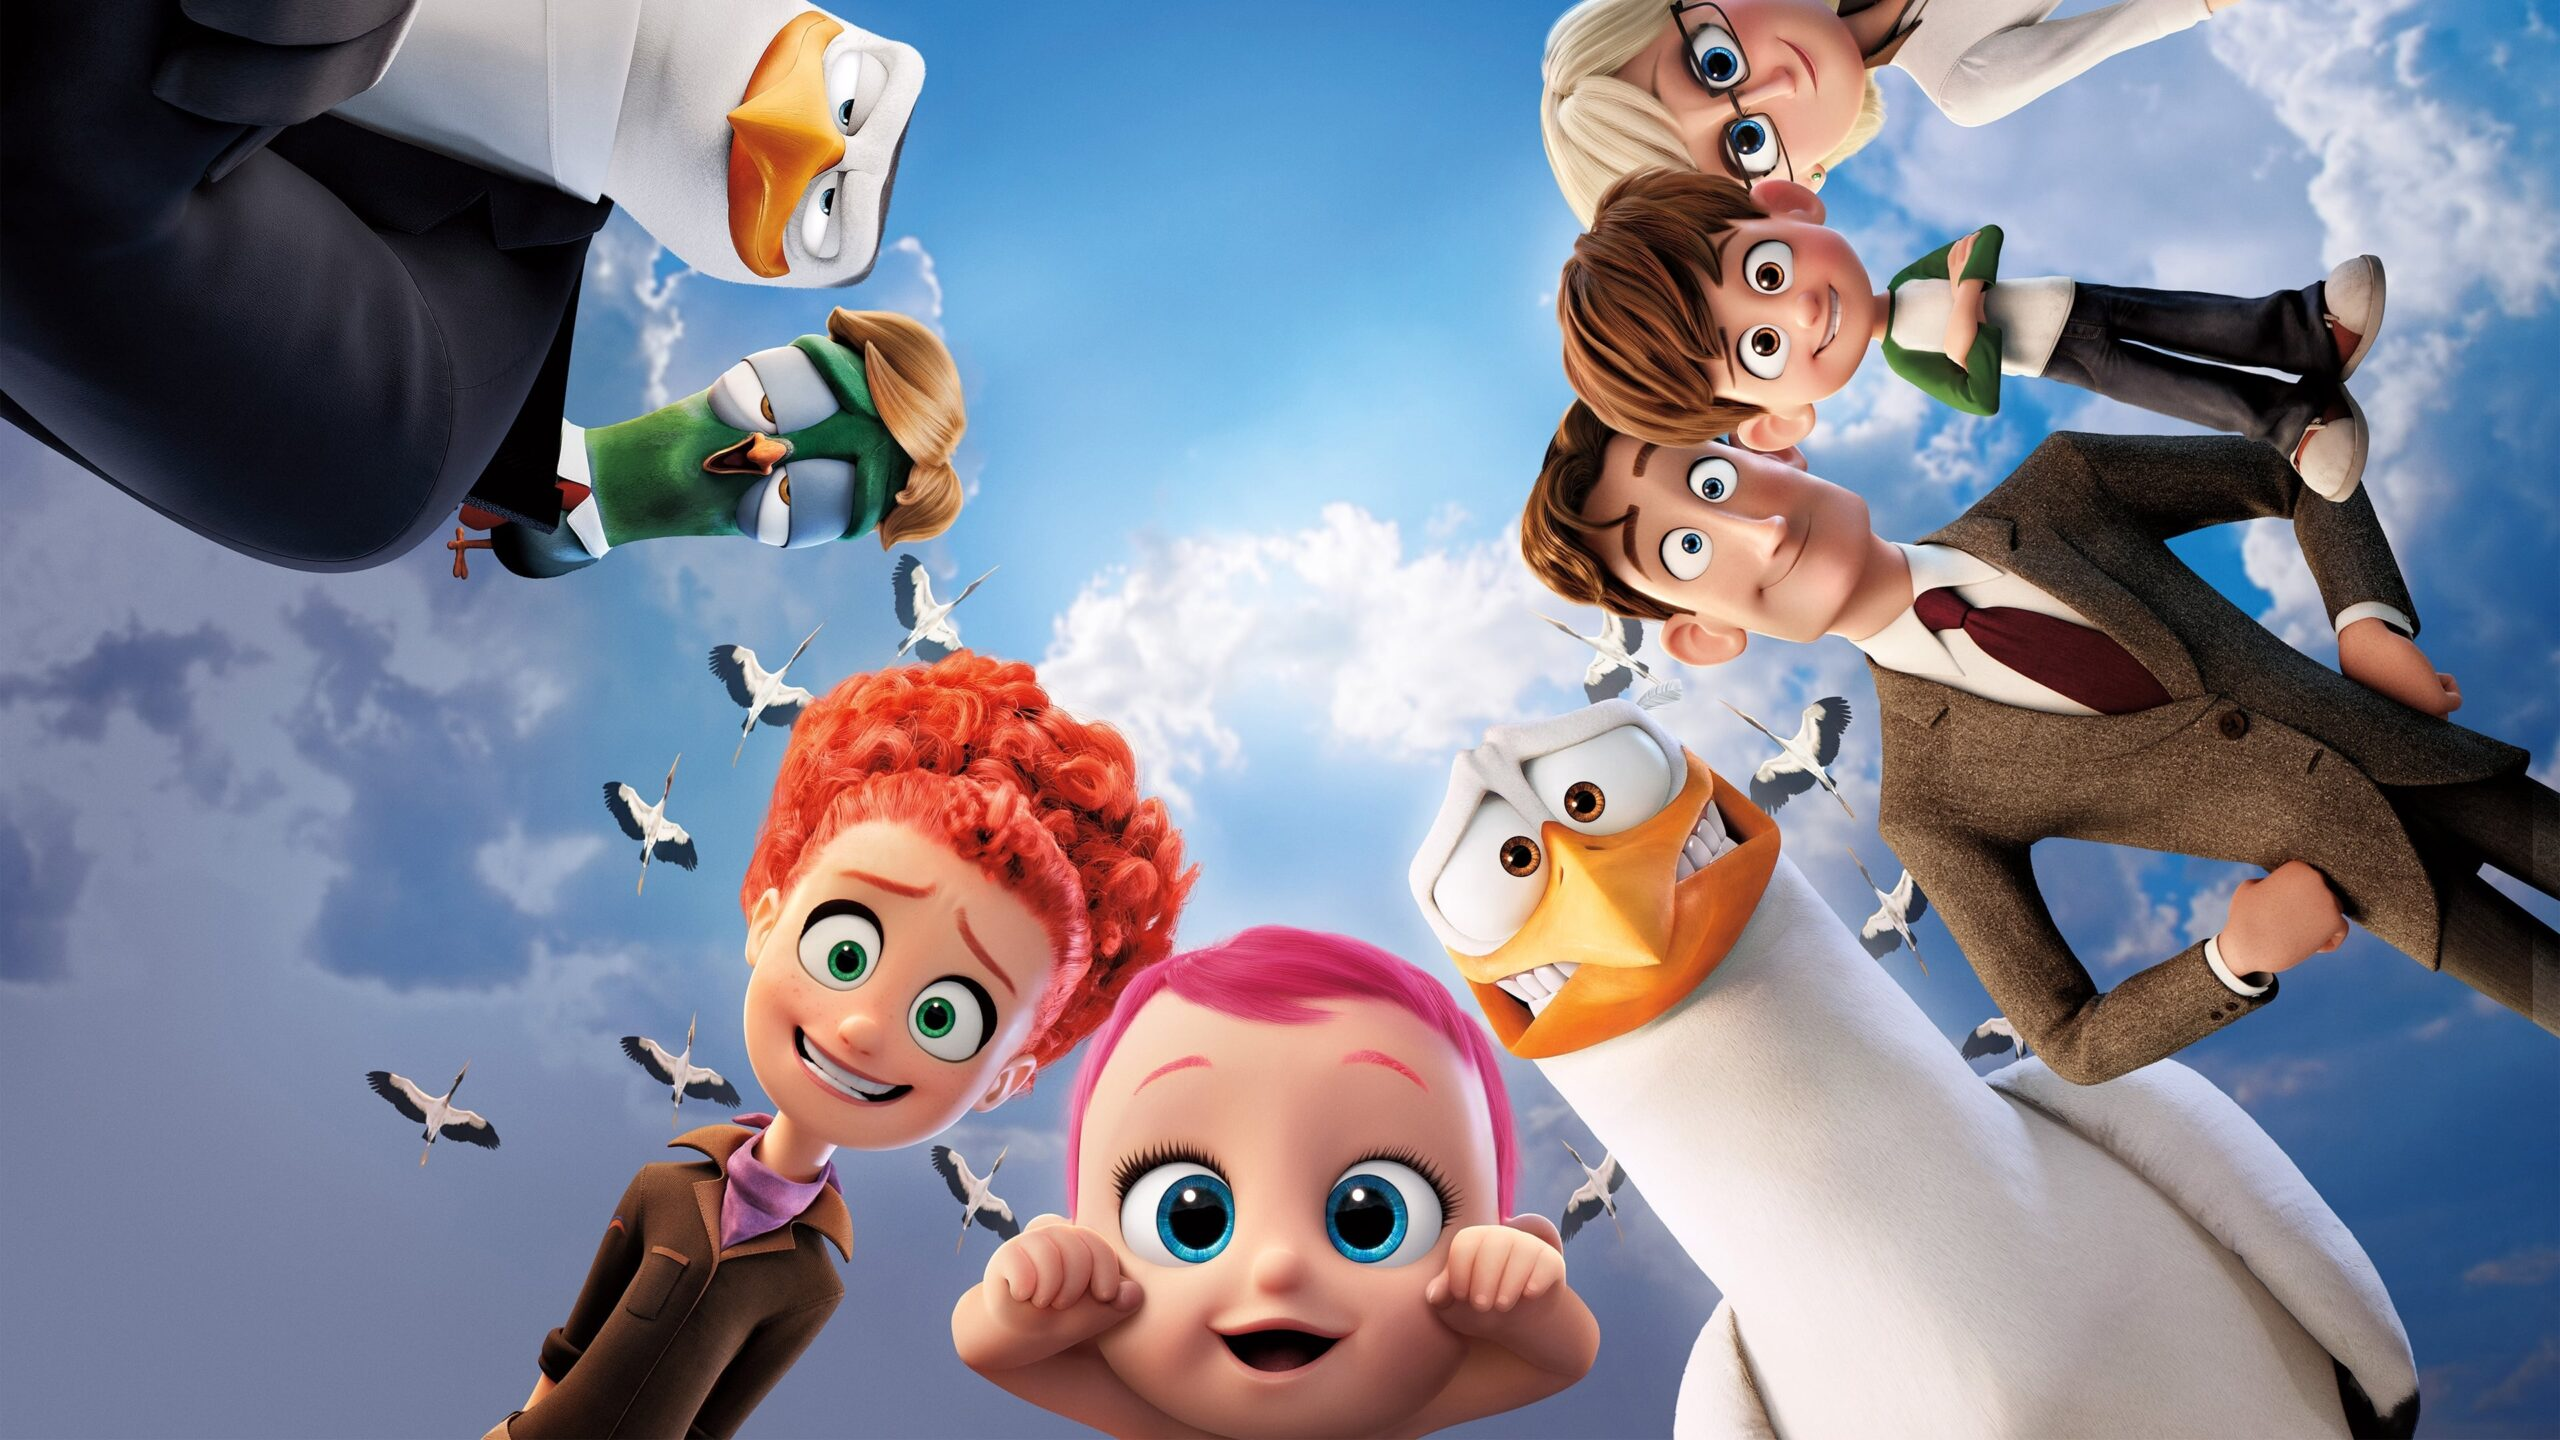 Storks Movie Streaming Online Watch on Google Play, Hungama, Tata Sky , Youtube, iTunes